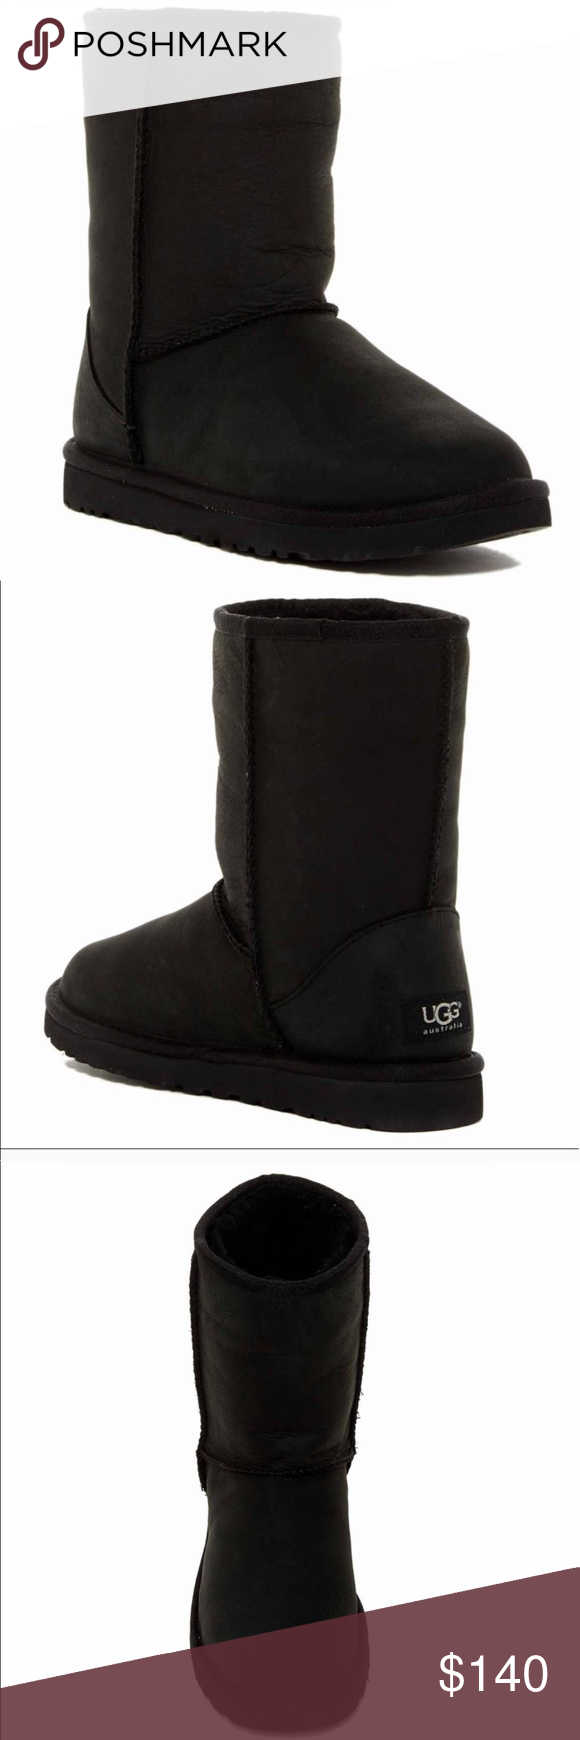 176109d2cd35 Authentic classic short black leather UGG boots Brand new in box Authentic classic  short black leather UGG boots UGG Shoes Winter   Rain Boots